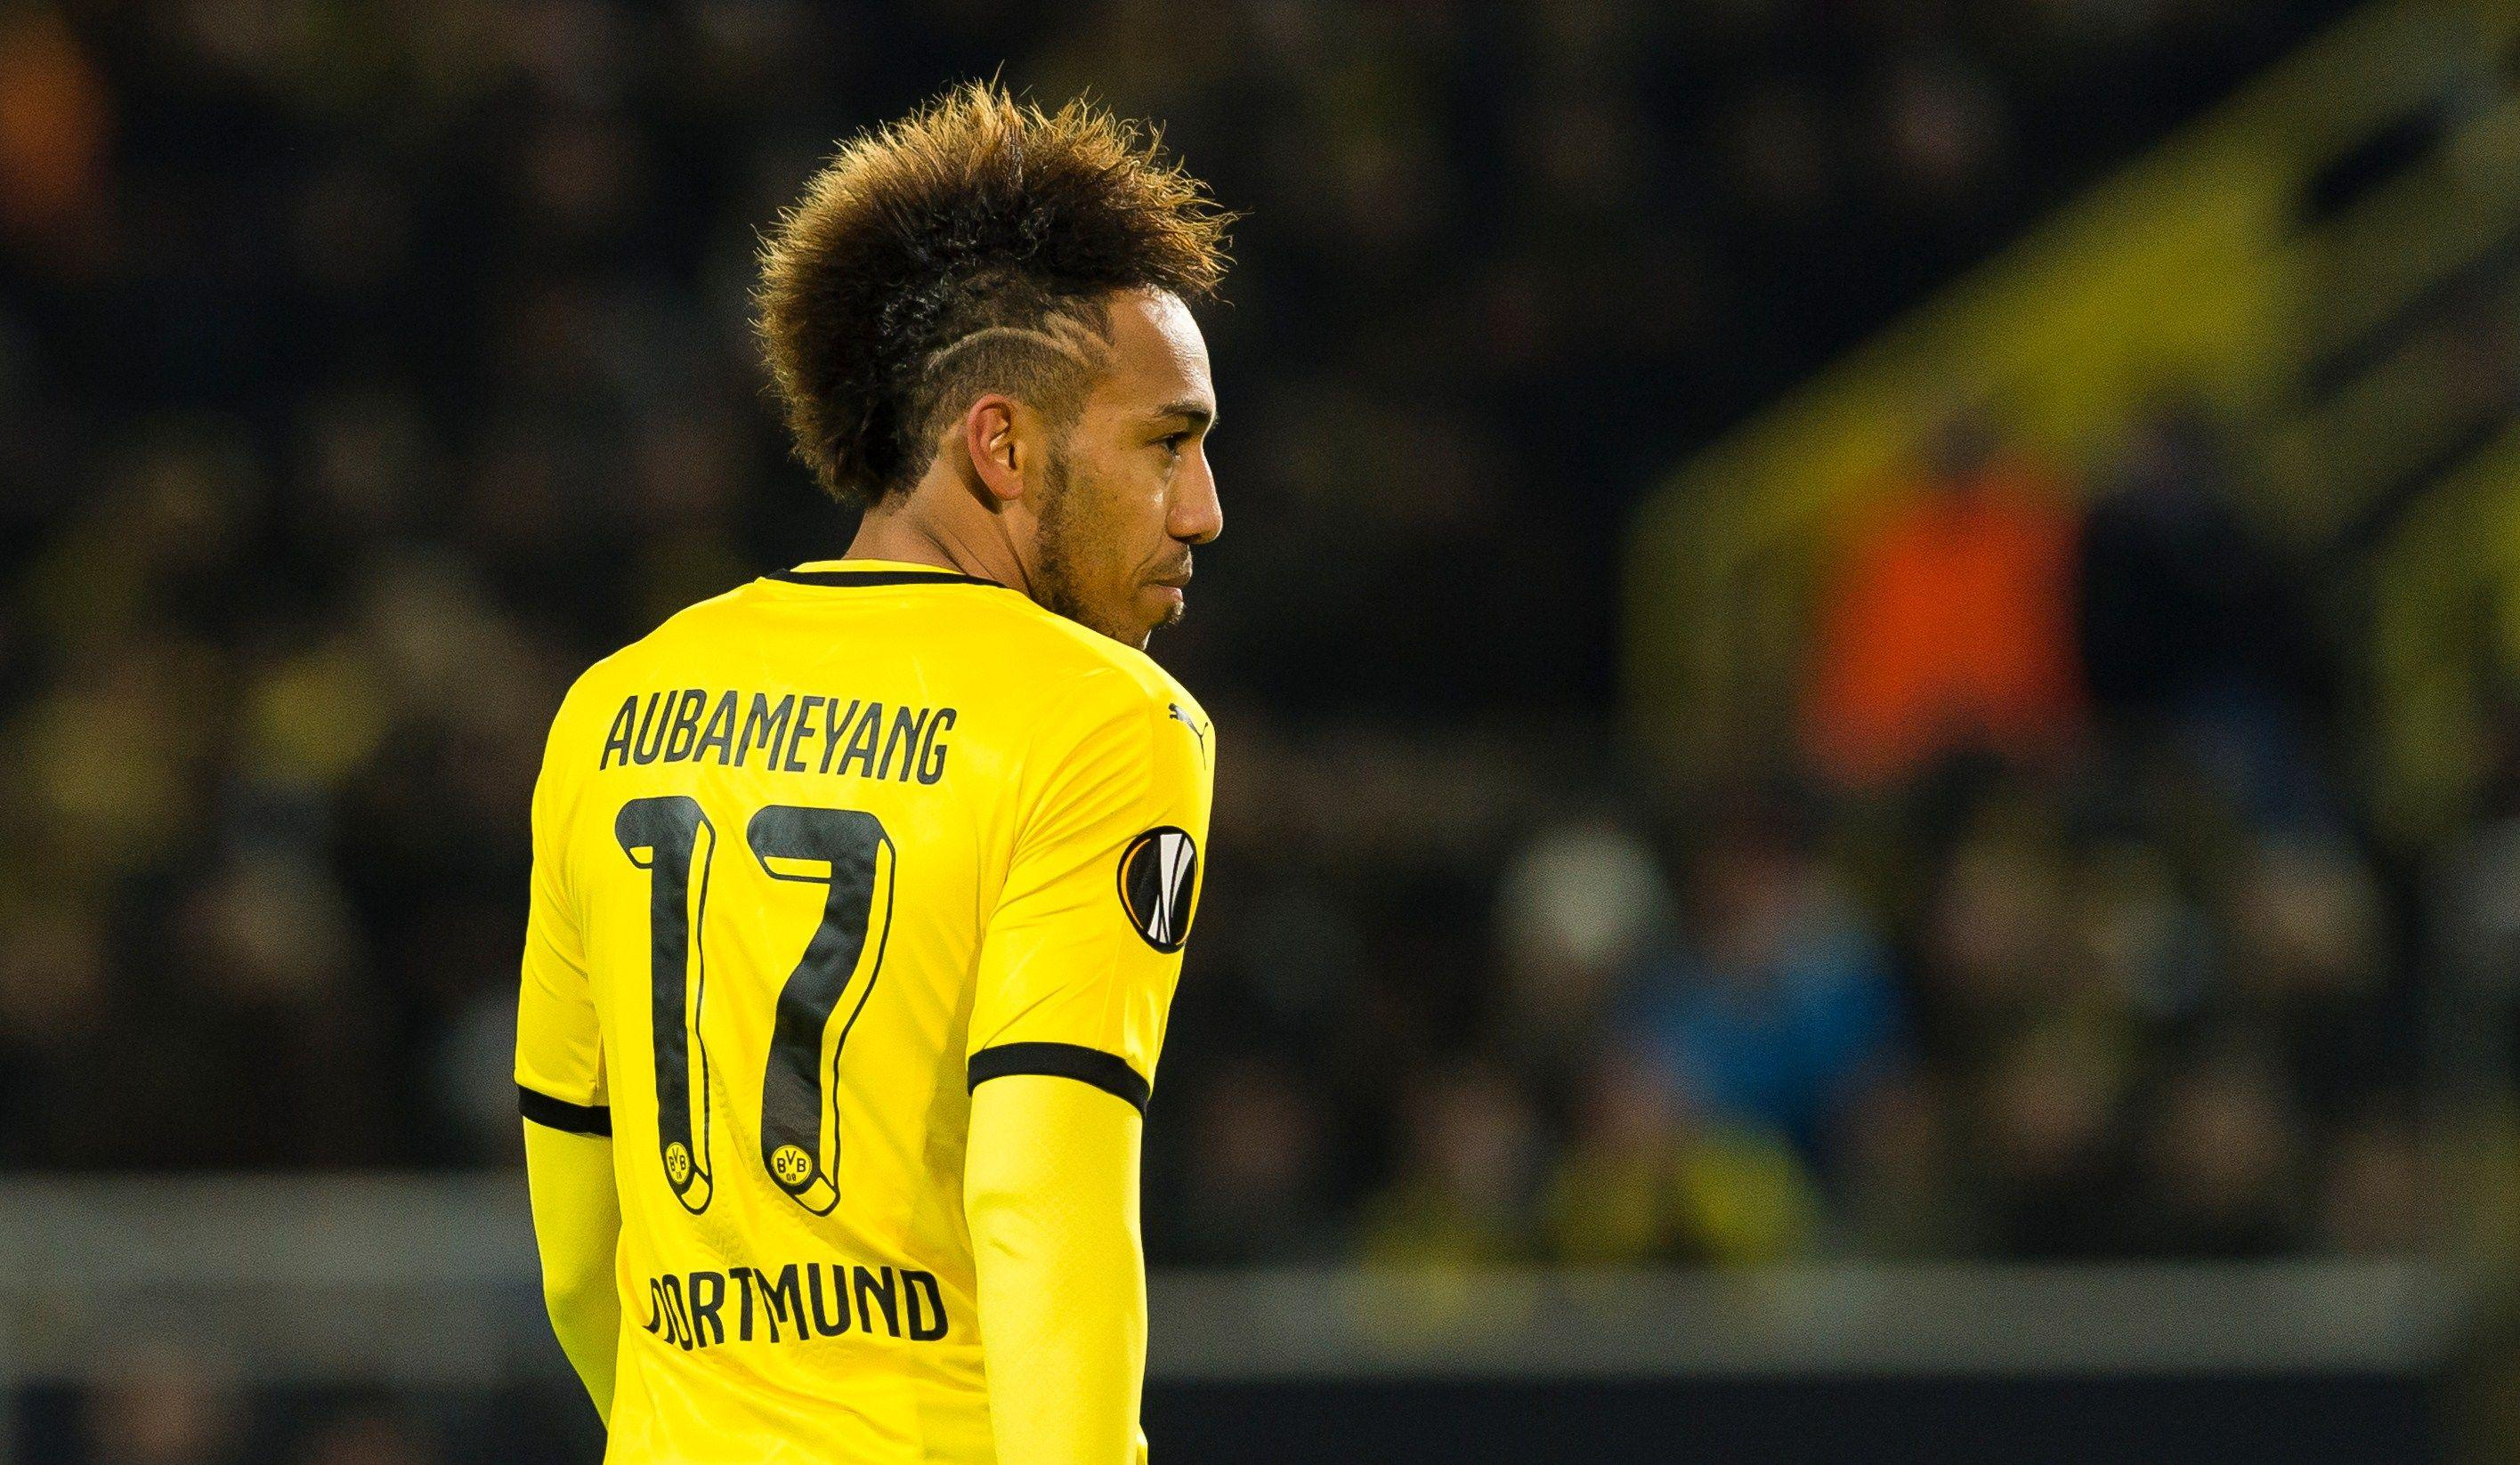 Pierre Emerick Aubameyang Wallpapers Wallpaper Cave